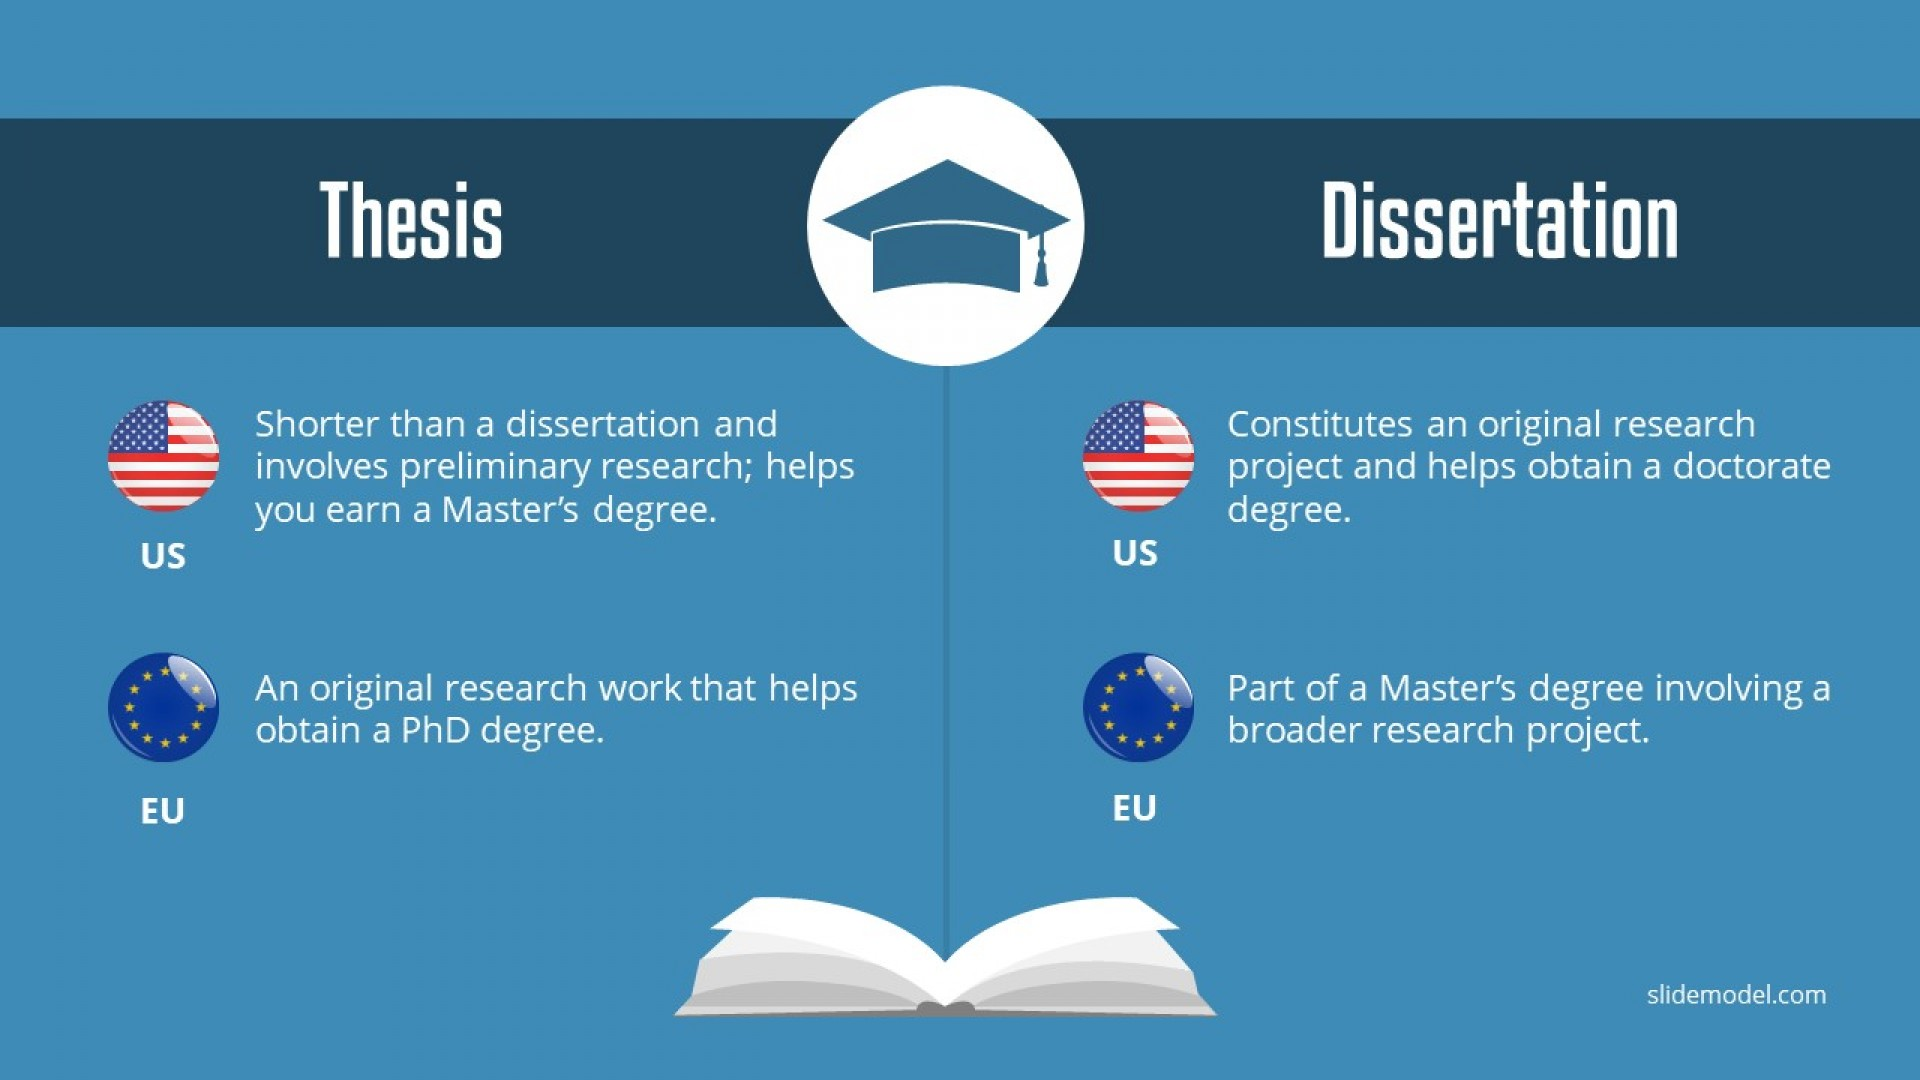 019 Comparison Slide Thesis Vs Dissertation Research Paper How To Write An Introduction For Unusual A Ppt Powerpoint 1920